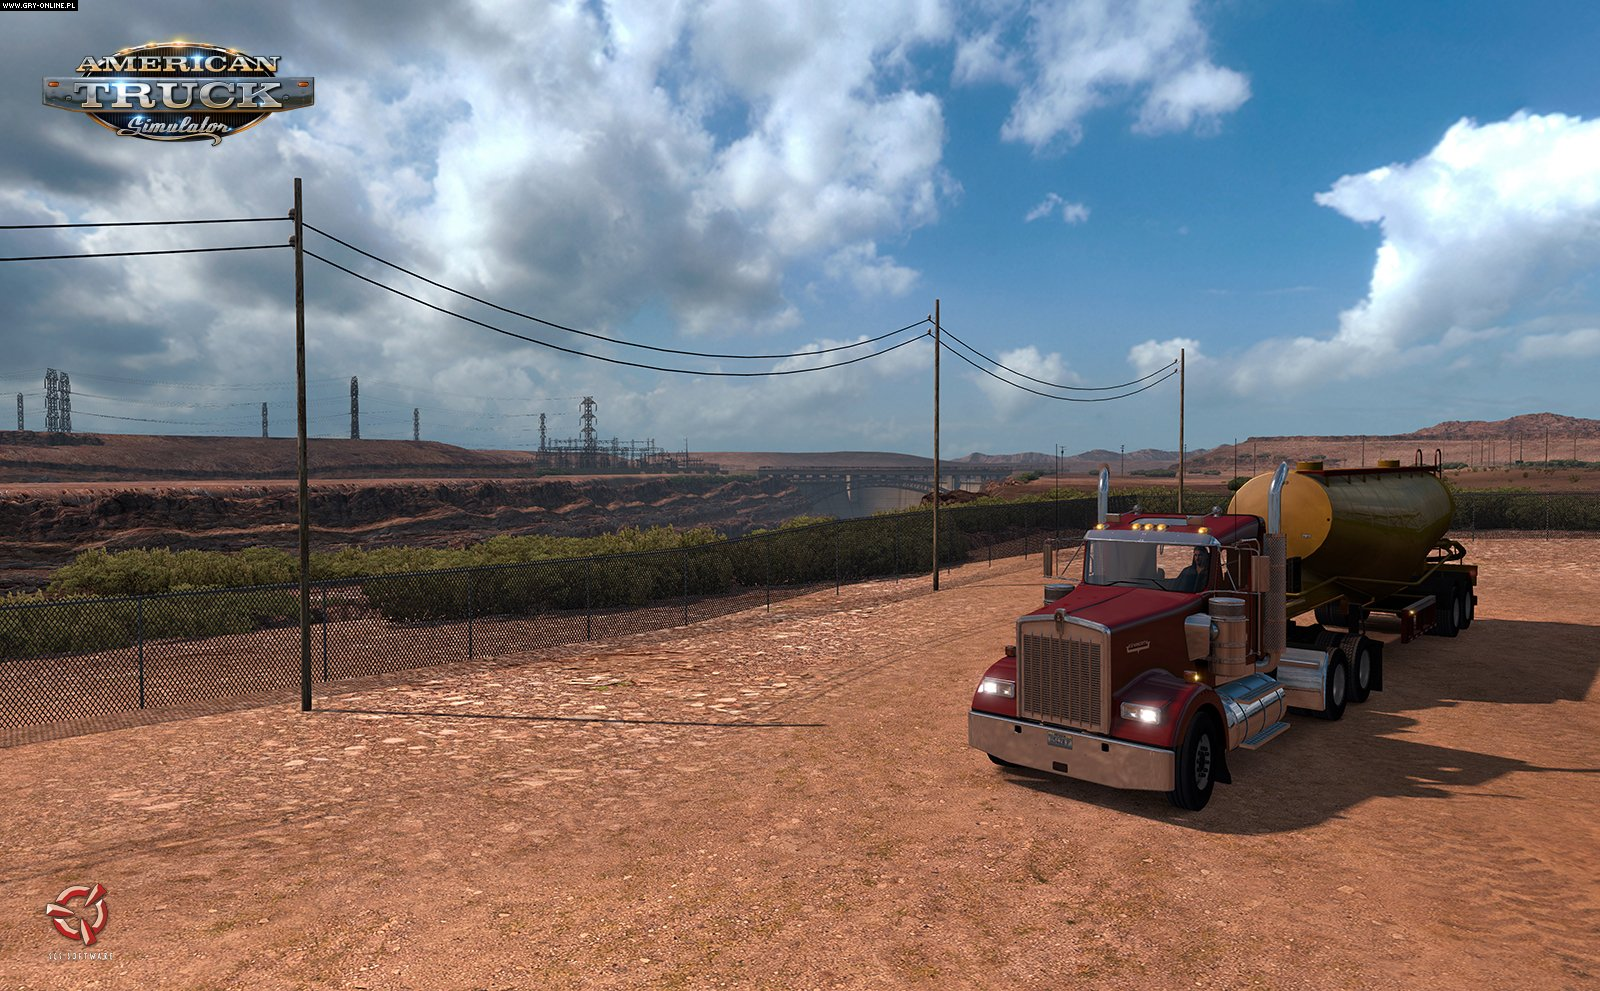 American Truck Simulator PC Gry Screen 2/68, SCS Software, IMGN.PRO